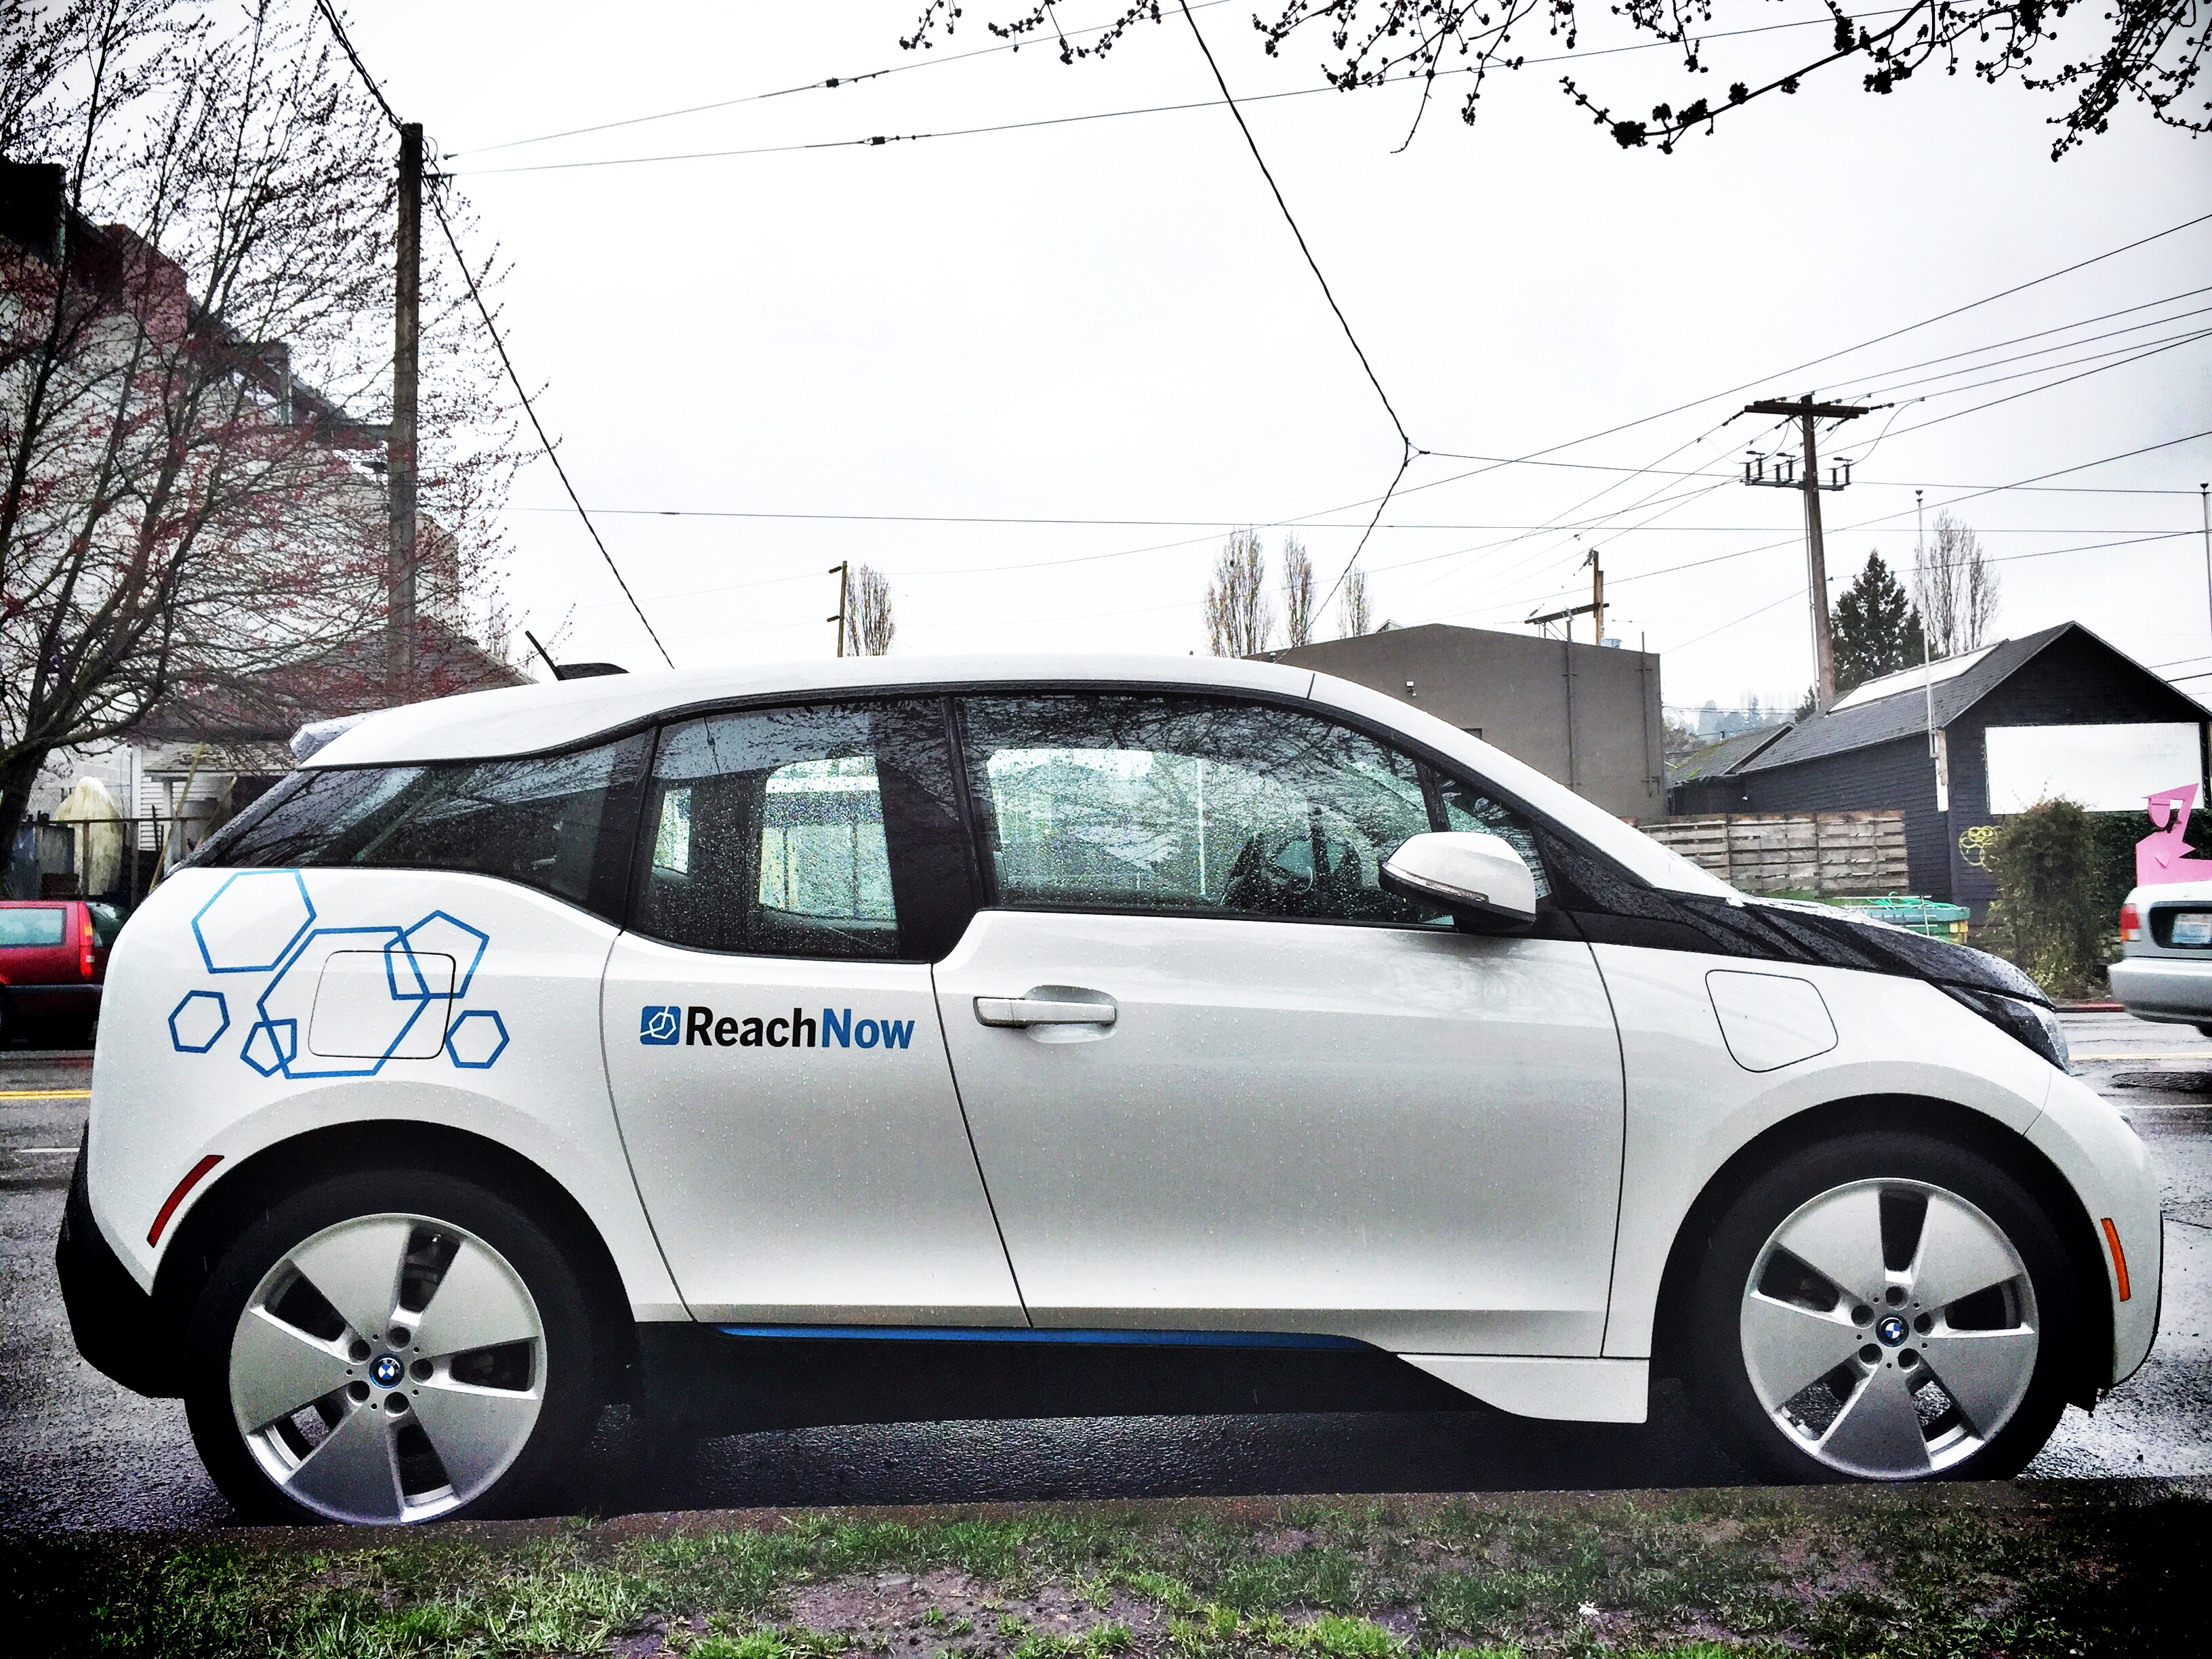 BMW ReachNow car-sharing service shuts down in Seattle and